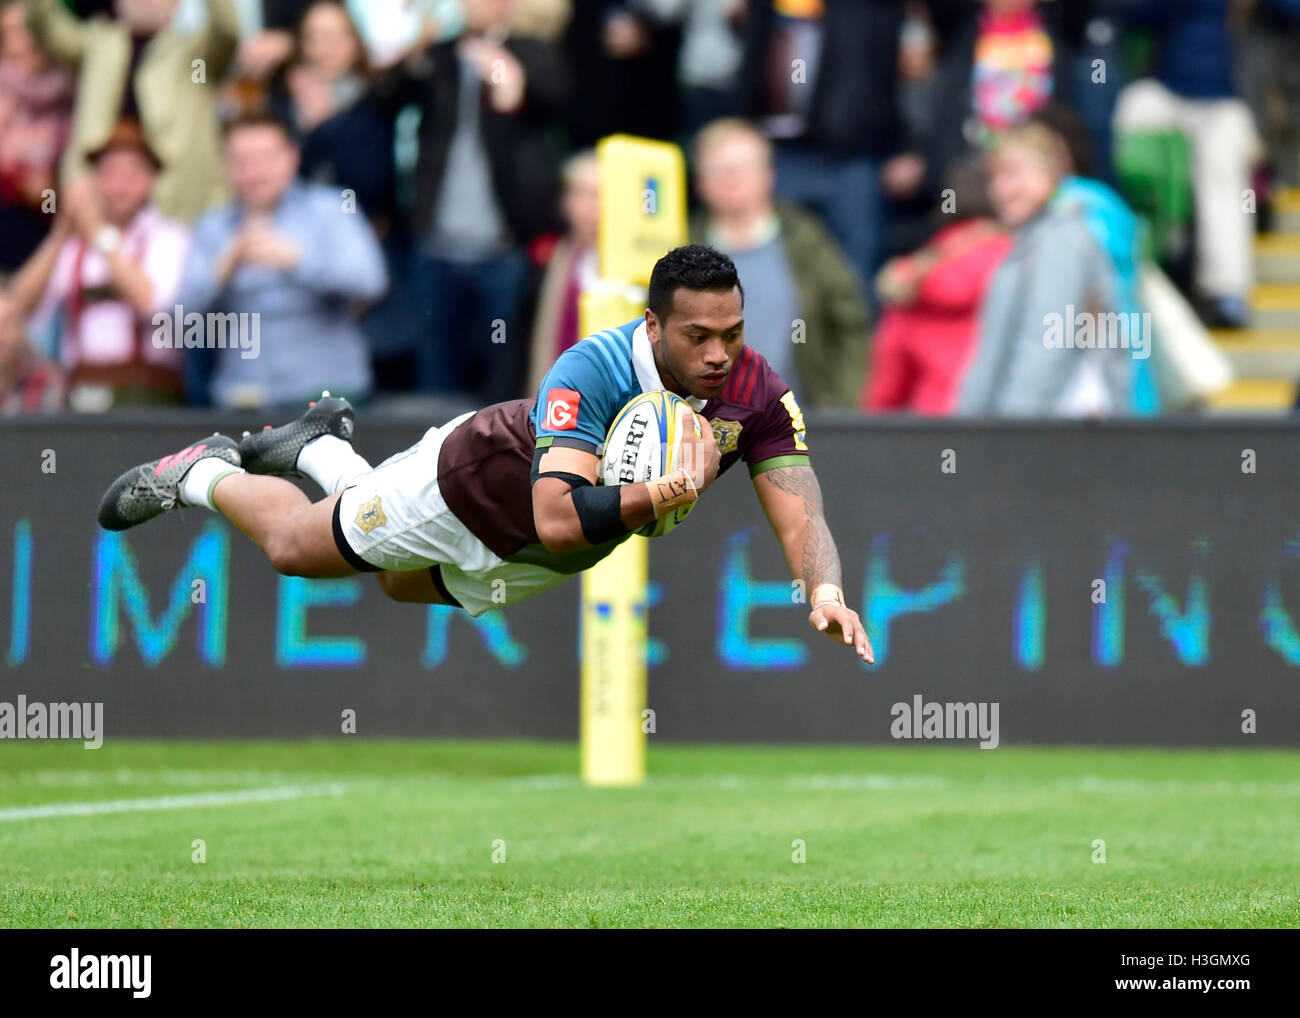 London, UK. 8th October, 2016.  Alofa Alofa of Harlequins scored a try during Aviva Premiership Rugby game between Stock Foto